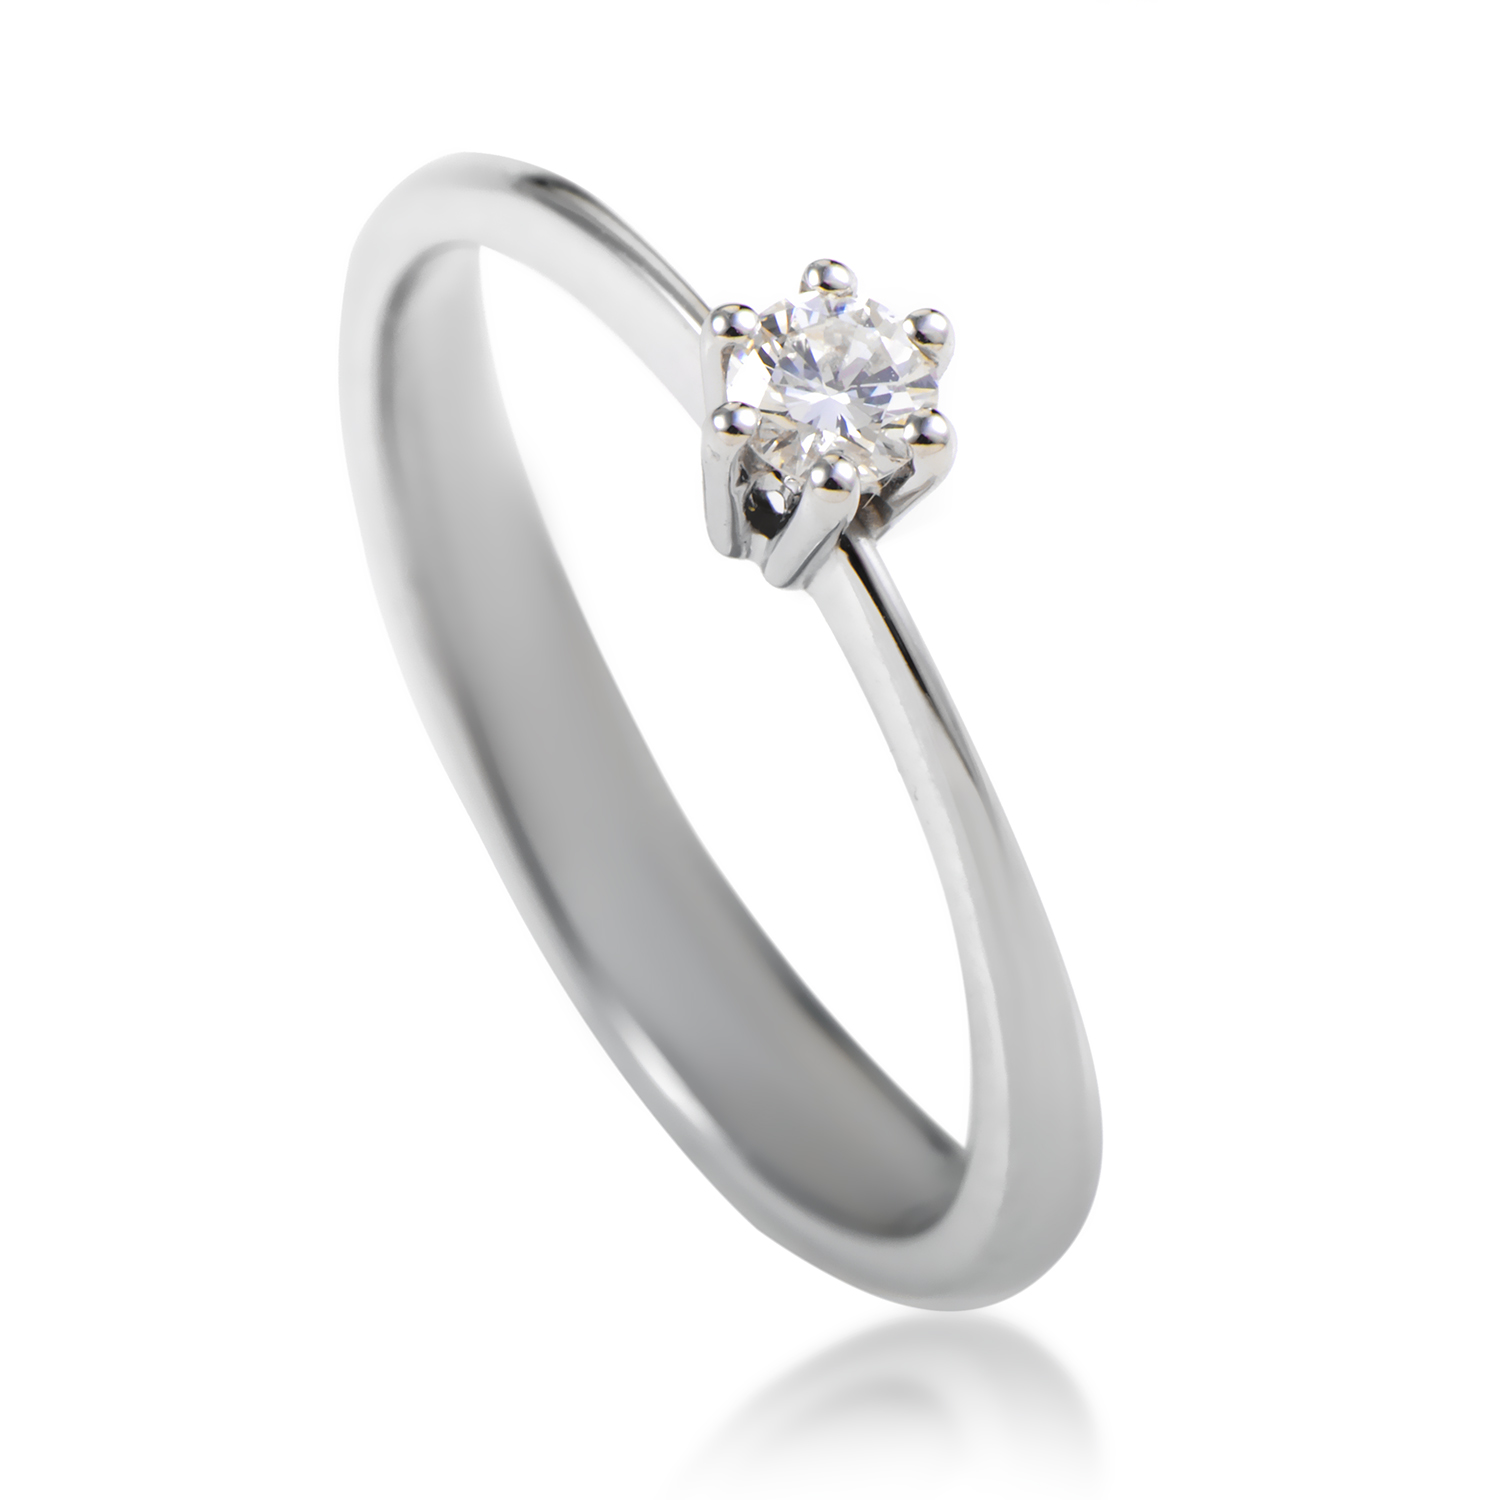 Abete 18K White Gold .14ct Diamond Solitaire Engagement Ring